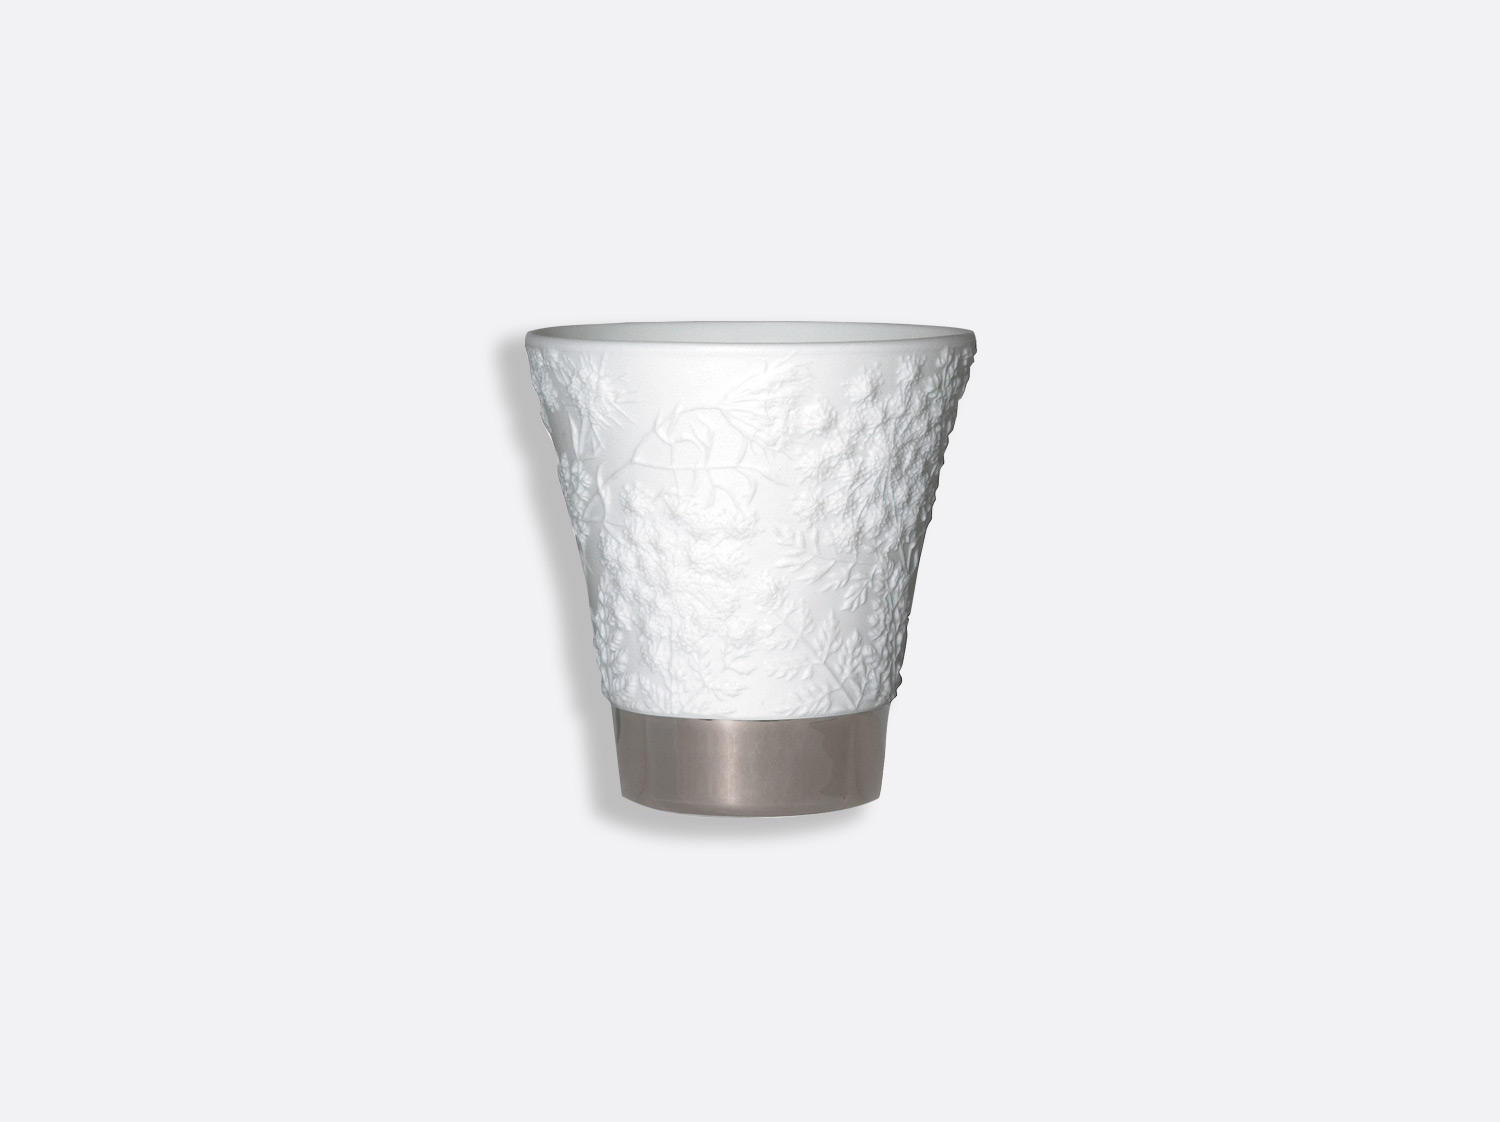 China Queen anne's lace - silver of the collection Votive tumblers | Bernardaud